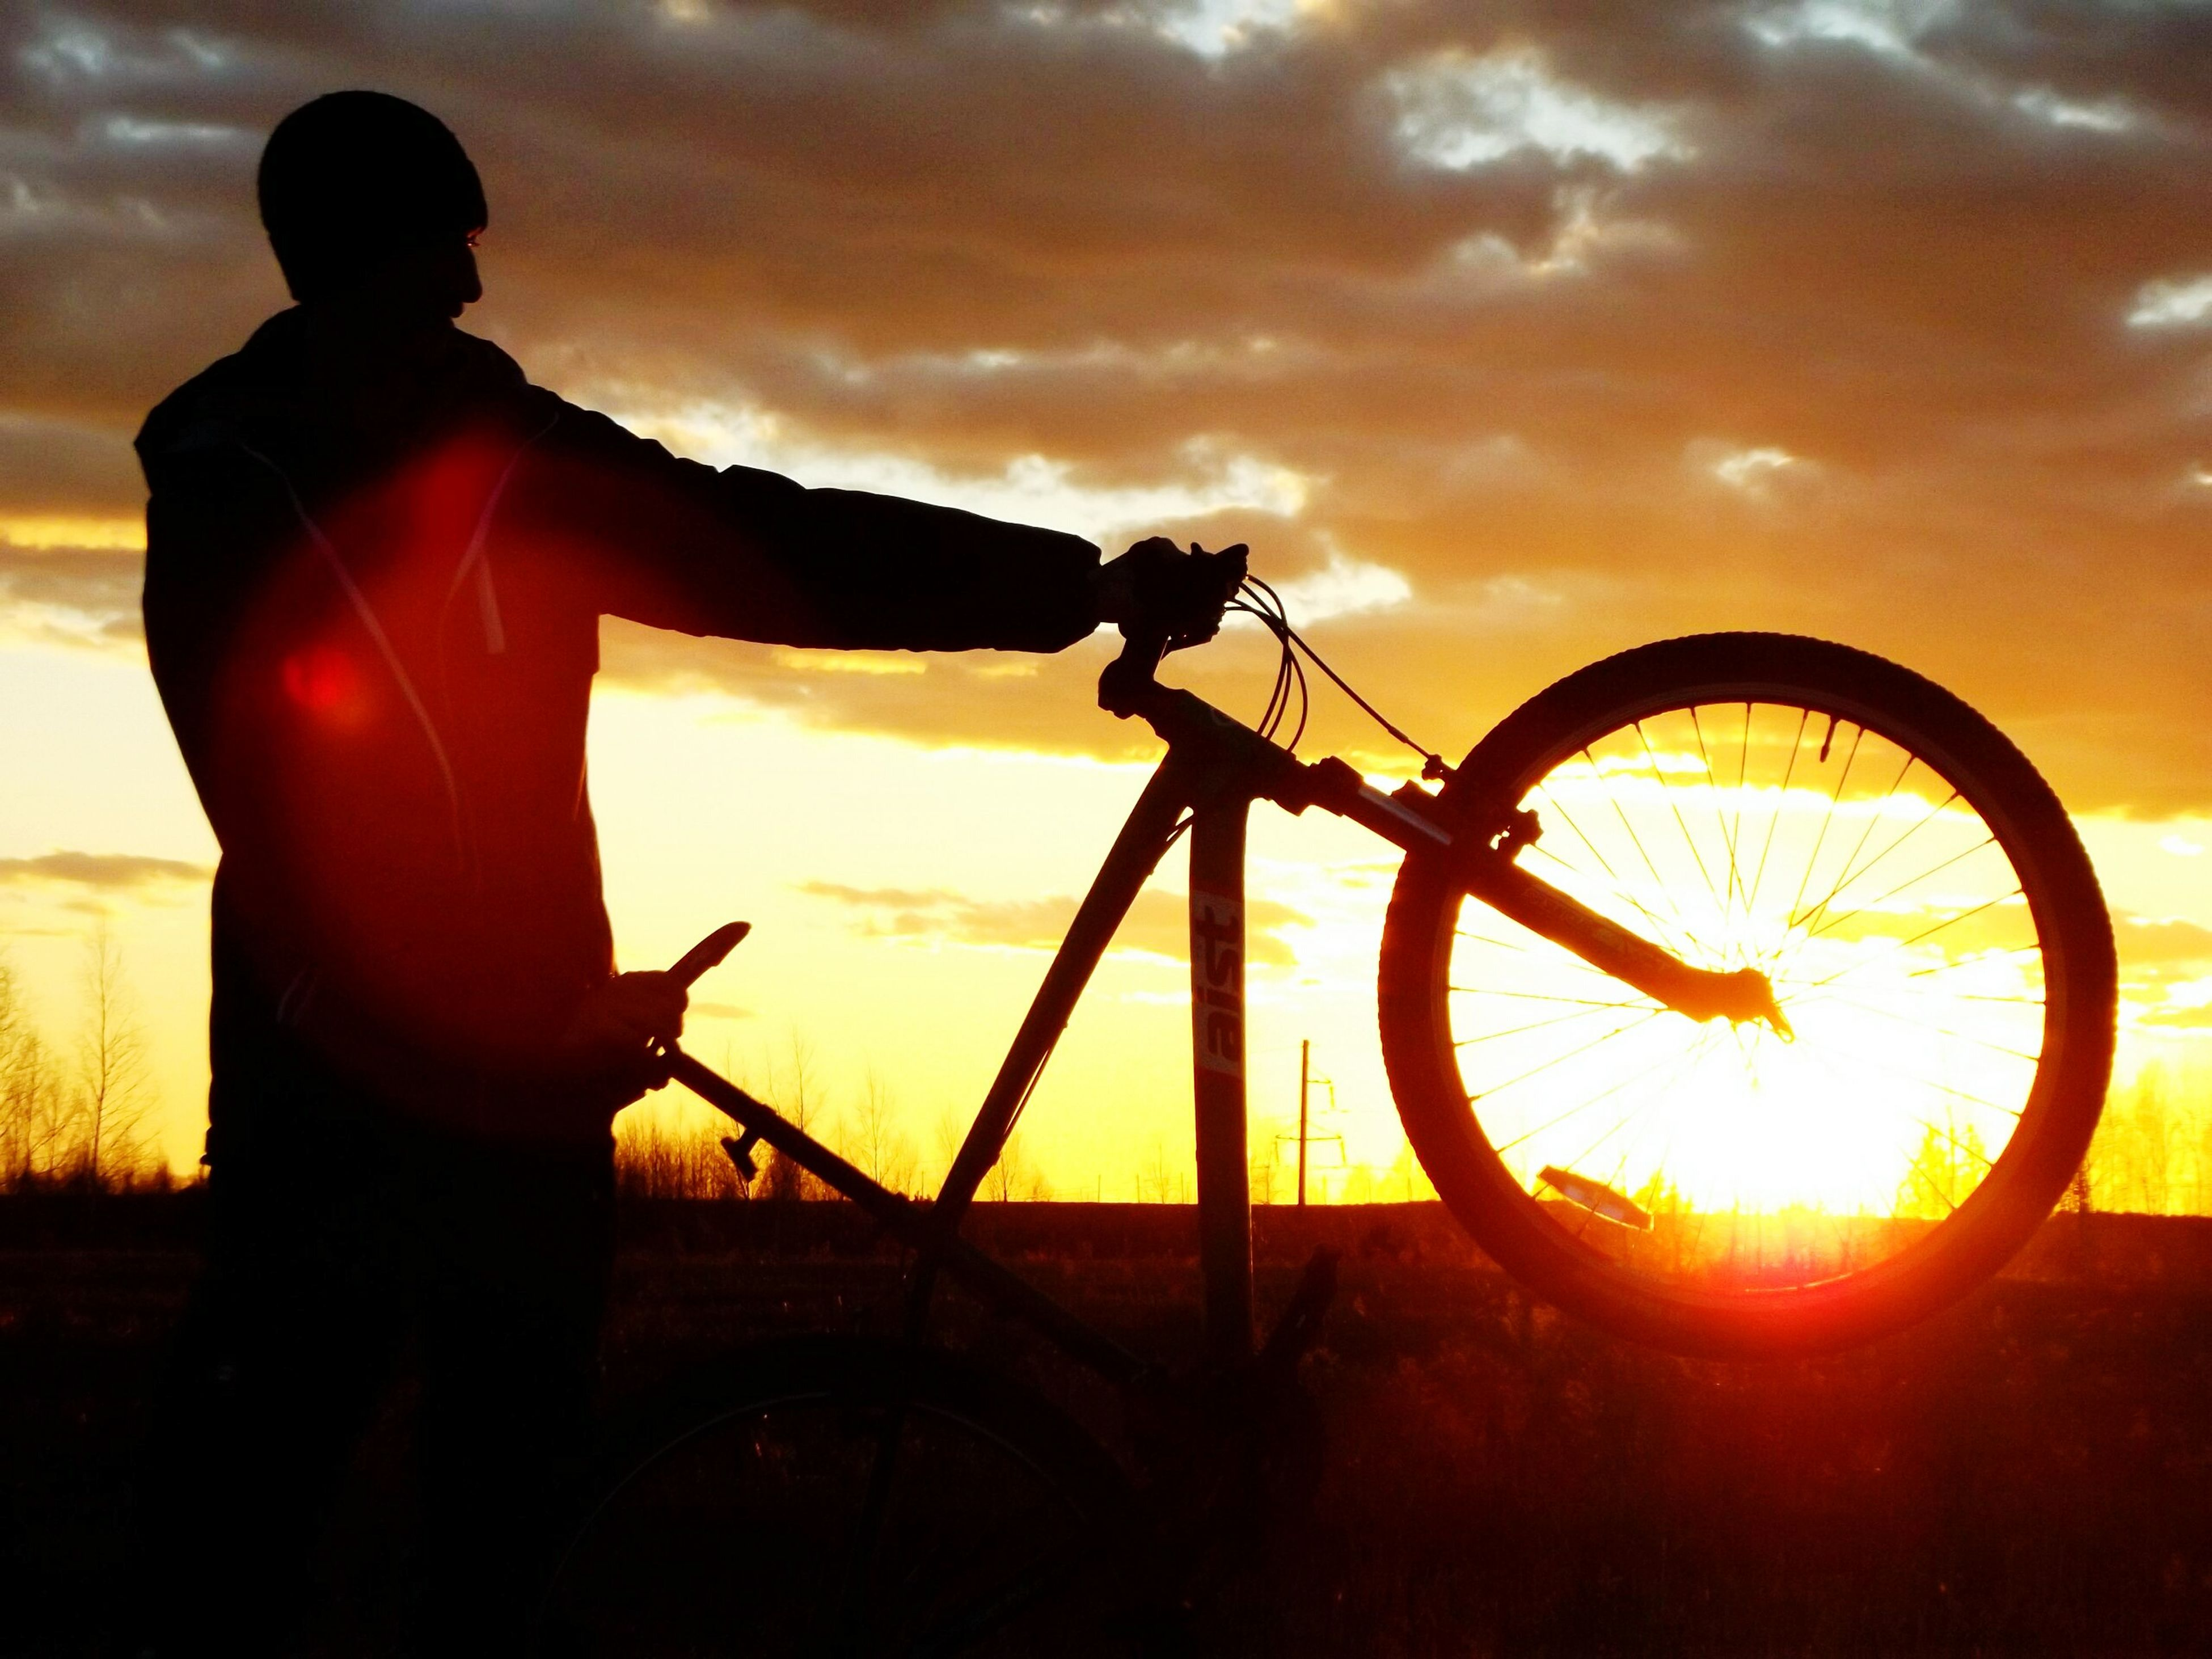 bicycle, cycling, sunset, sky, land vehicle, one person, silhouette, outdoors, tire, men, nature, headwear, spoke, people